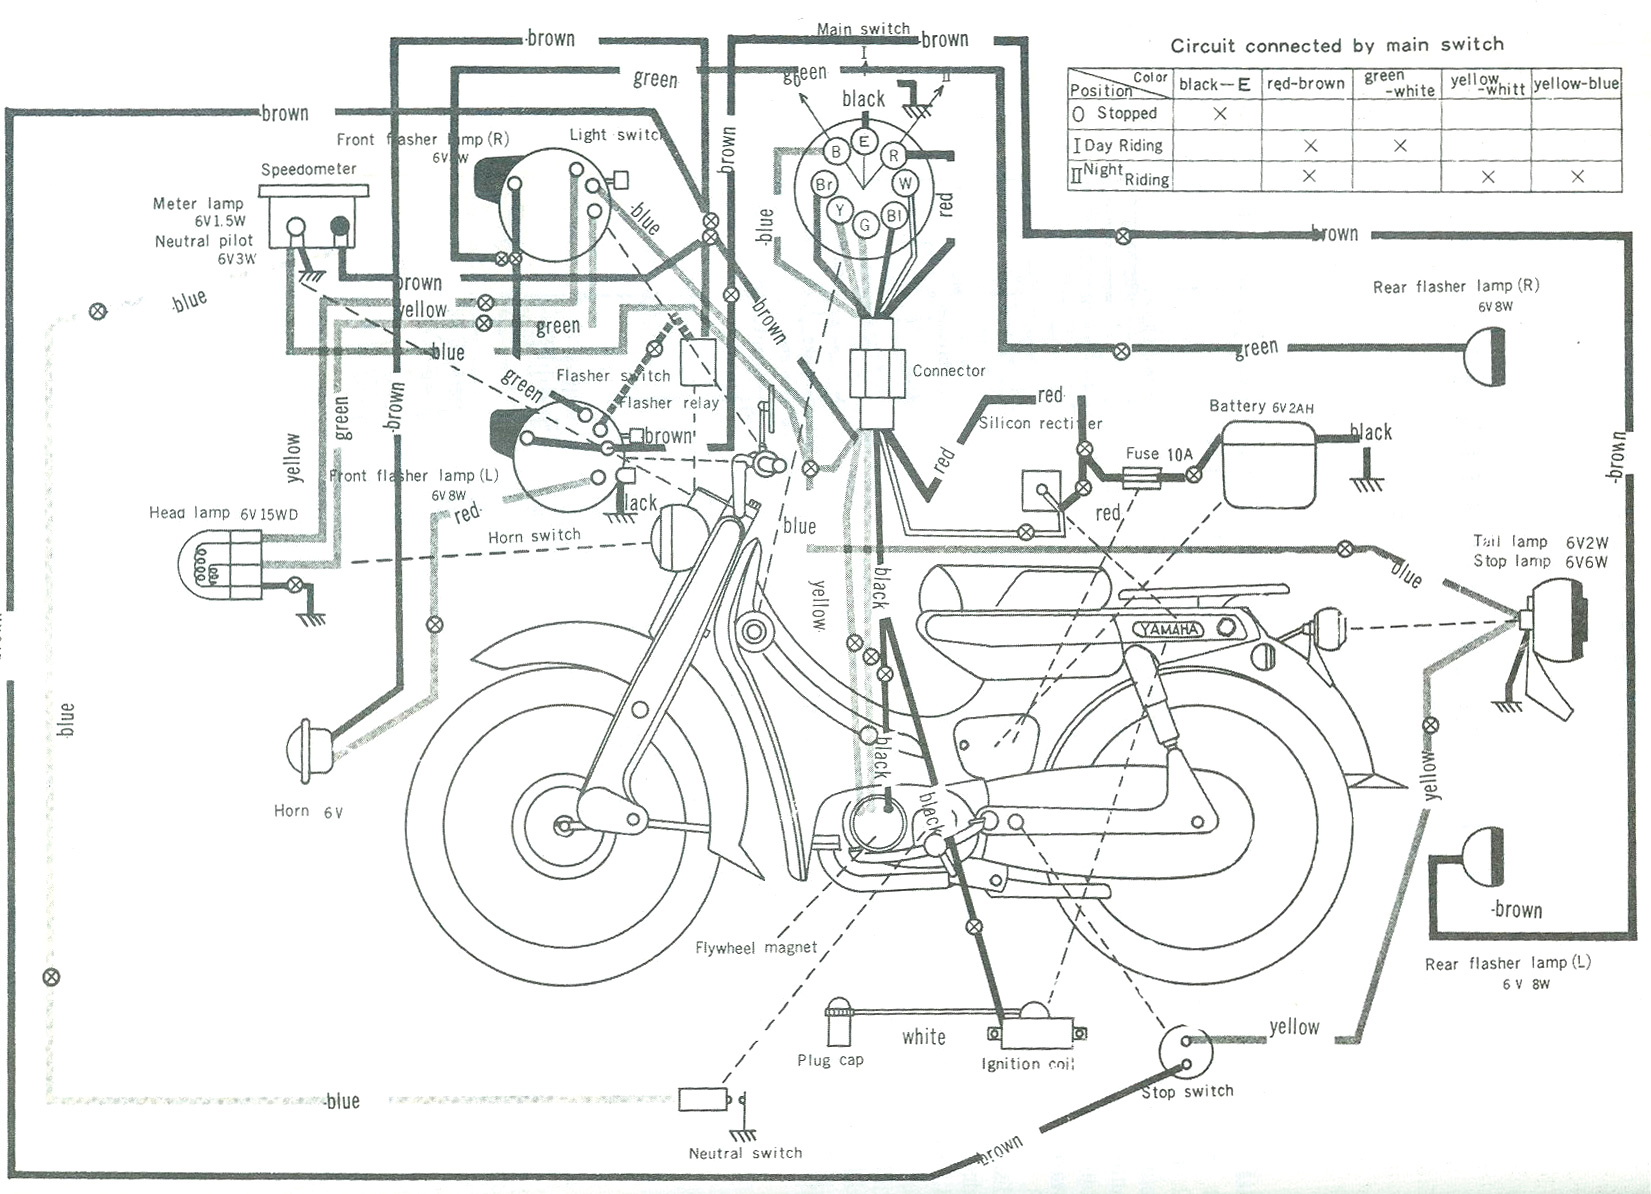 u5e_wiring servicemanuals motorcycle how to and repair readingrat net 1979 Yamaha It 400 Enduro at edmiracle.co